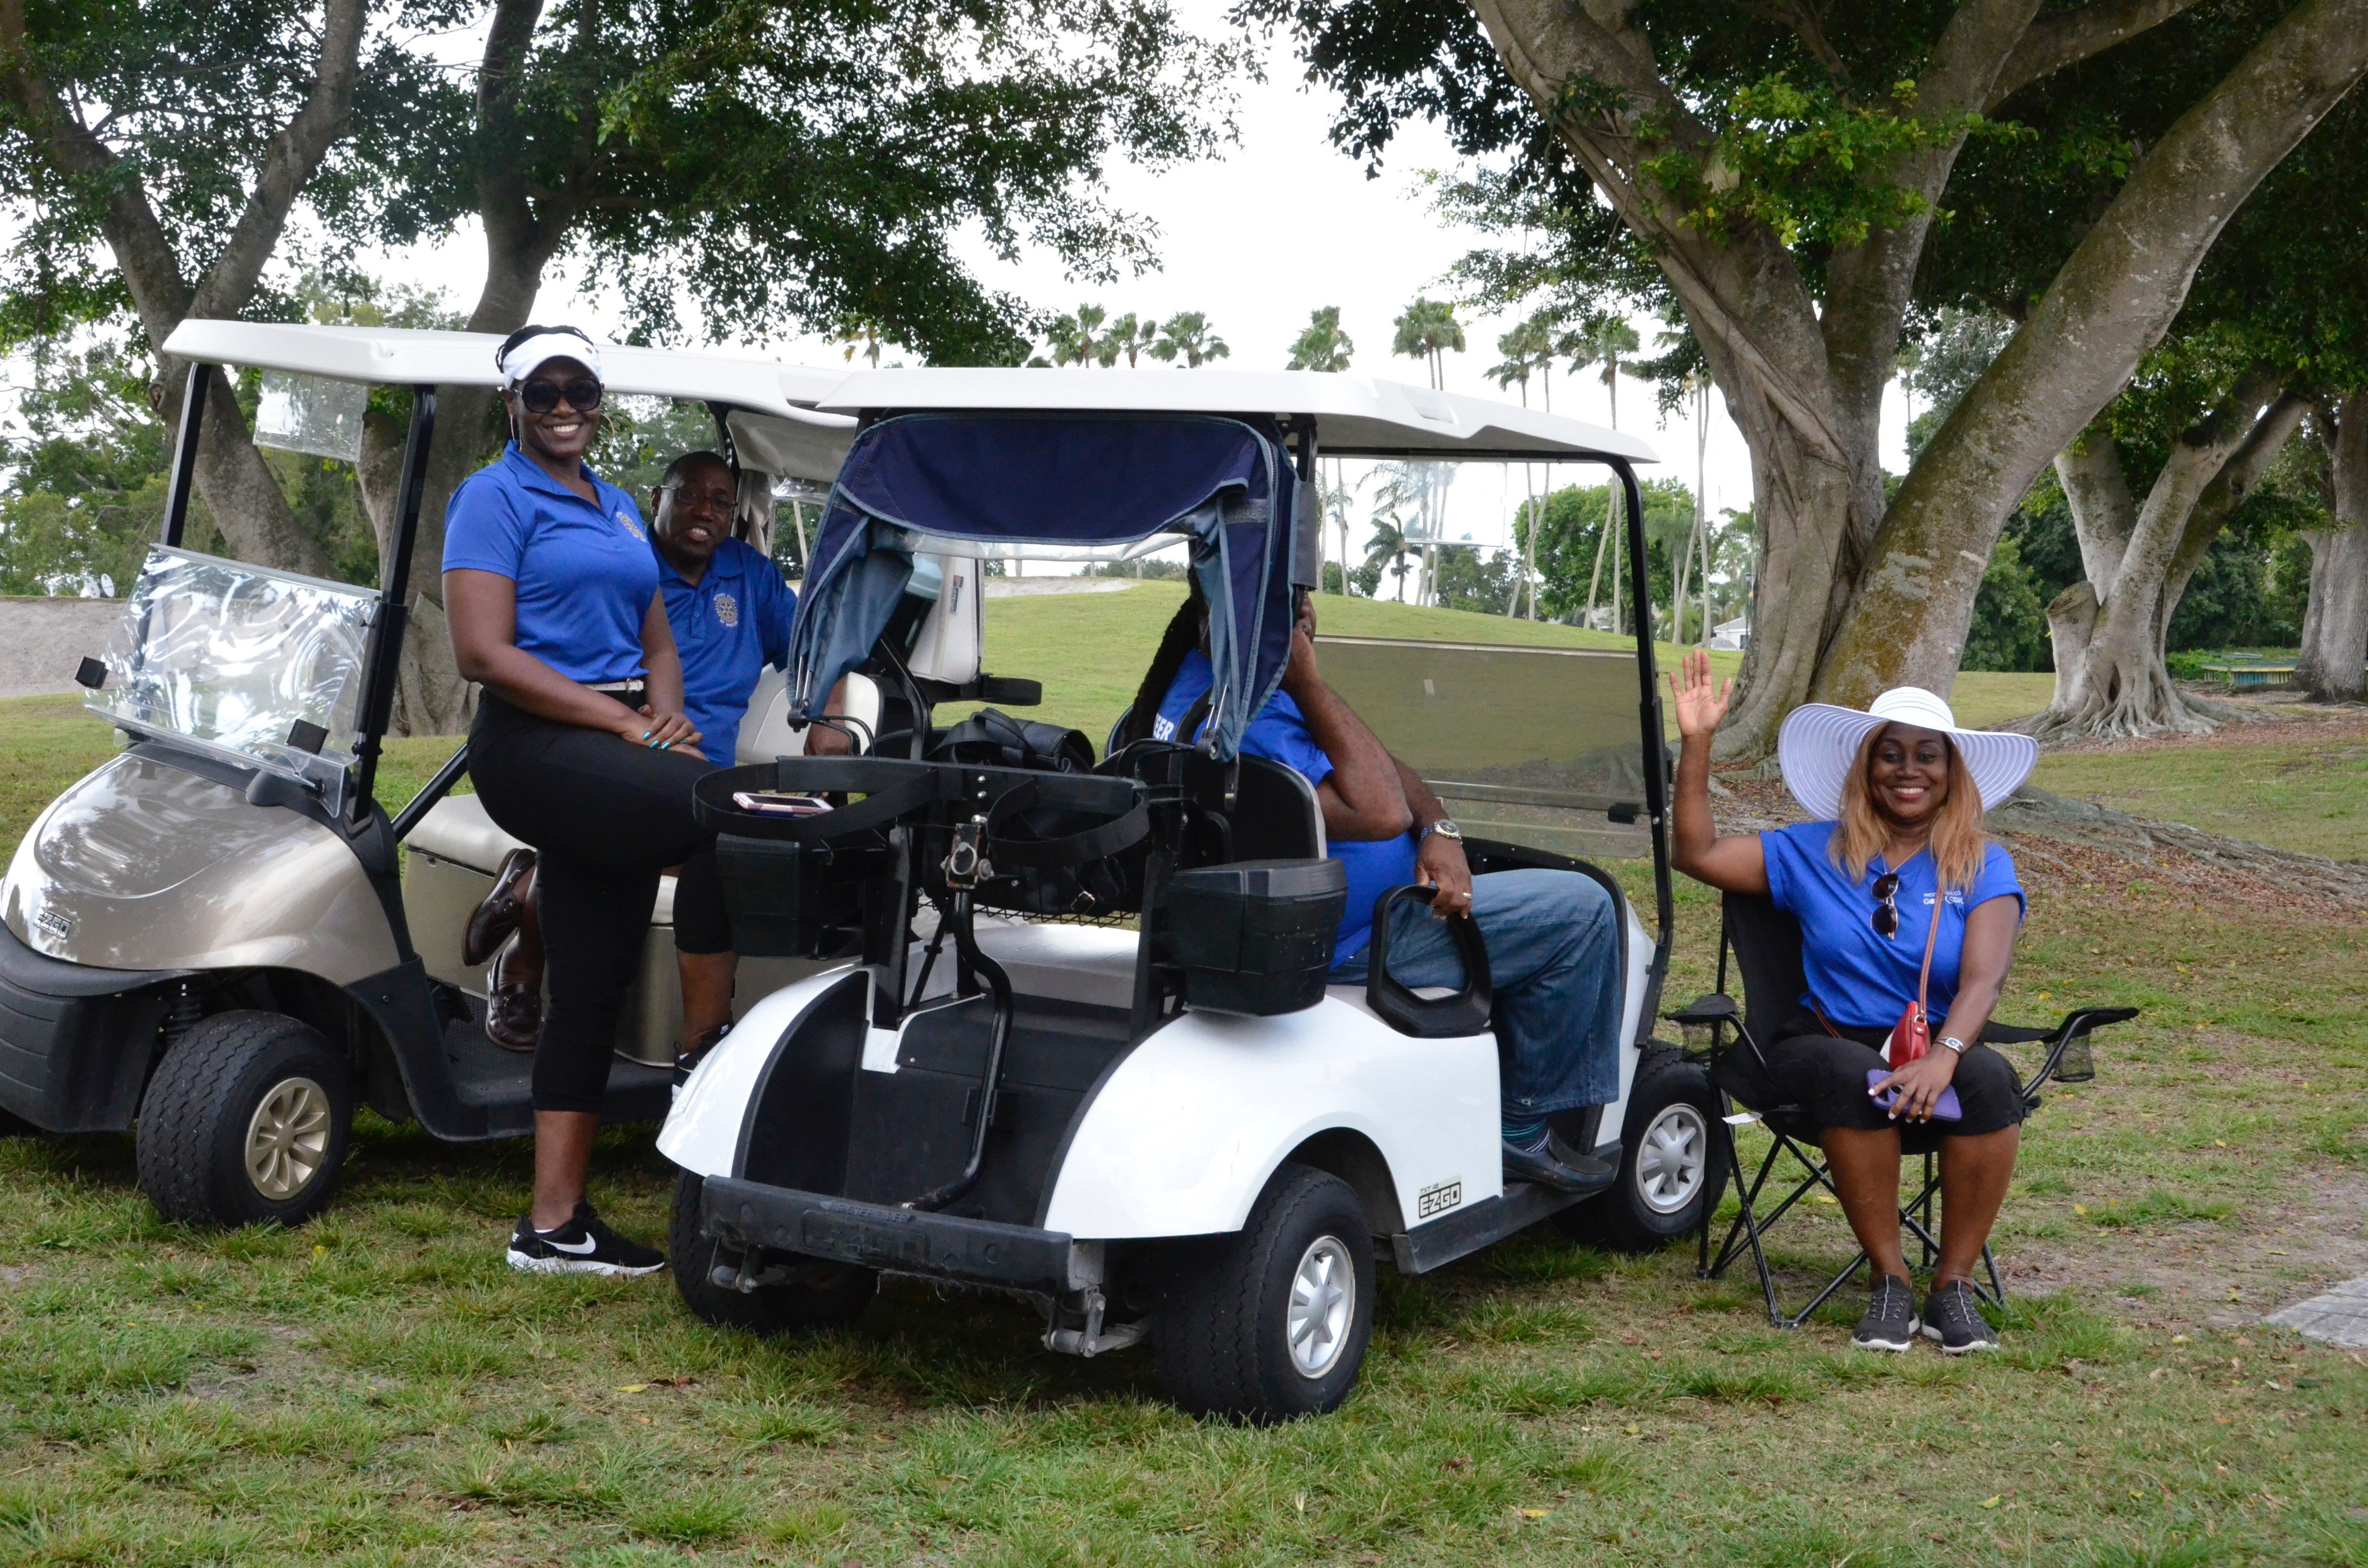 33rd Annual Rotary Golf Classic Sponsored by FHVLEGAL.COM gallery image #86